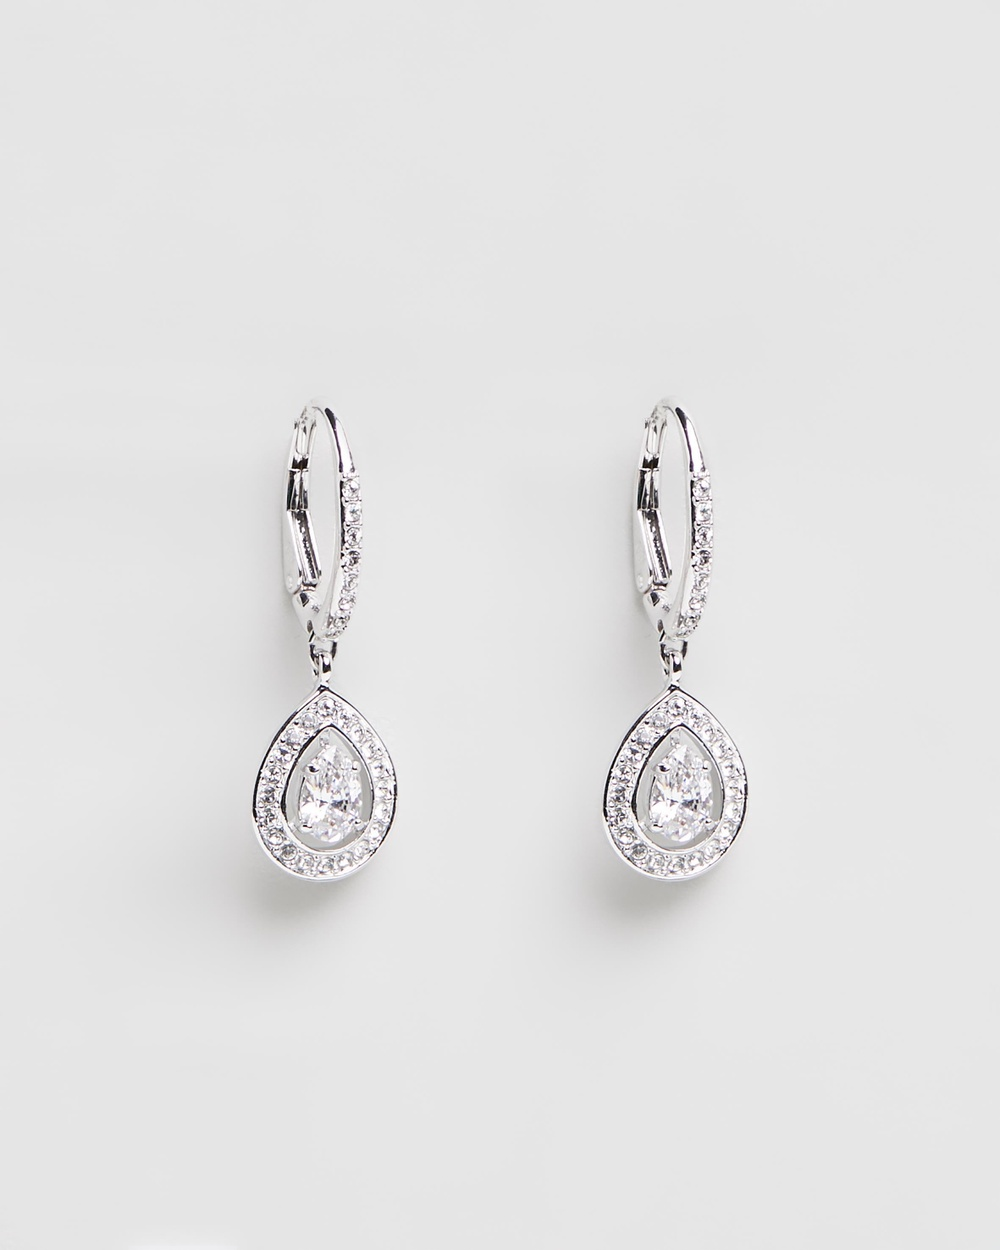 Swarovski Attract Pear White Gold Pendant Earrings with Crystals Jewellery Silver